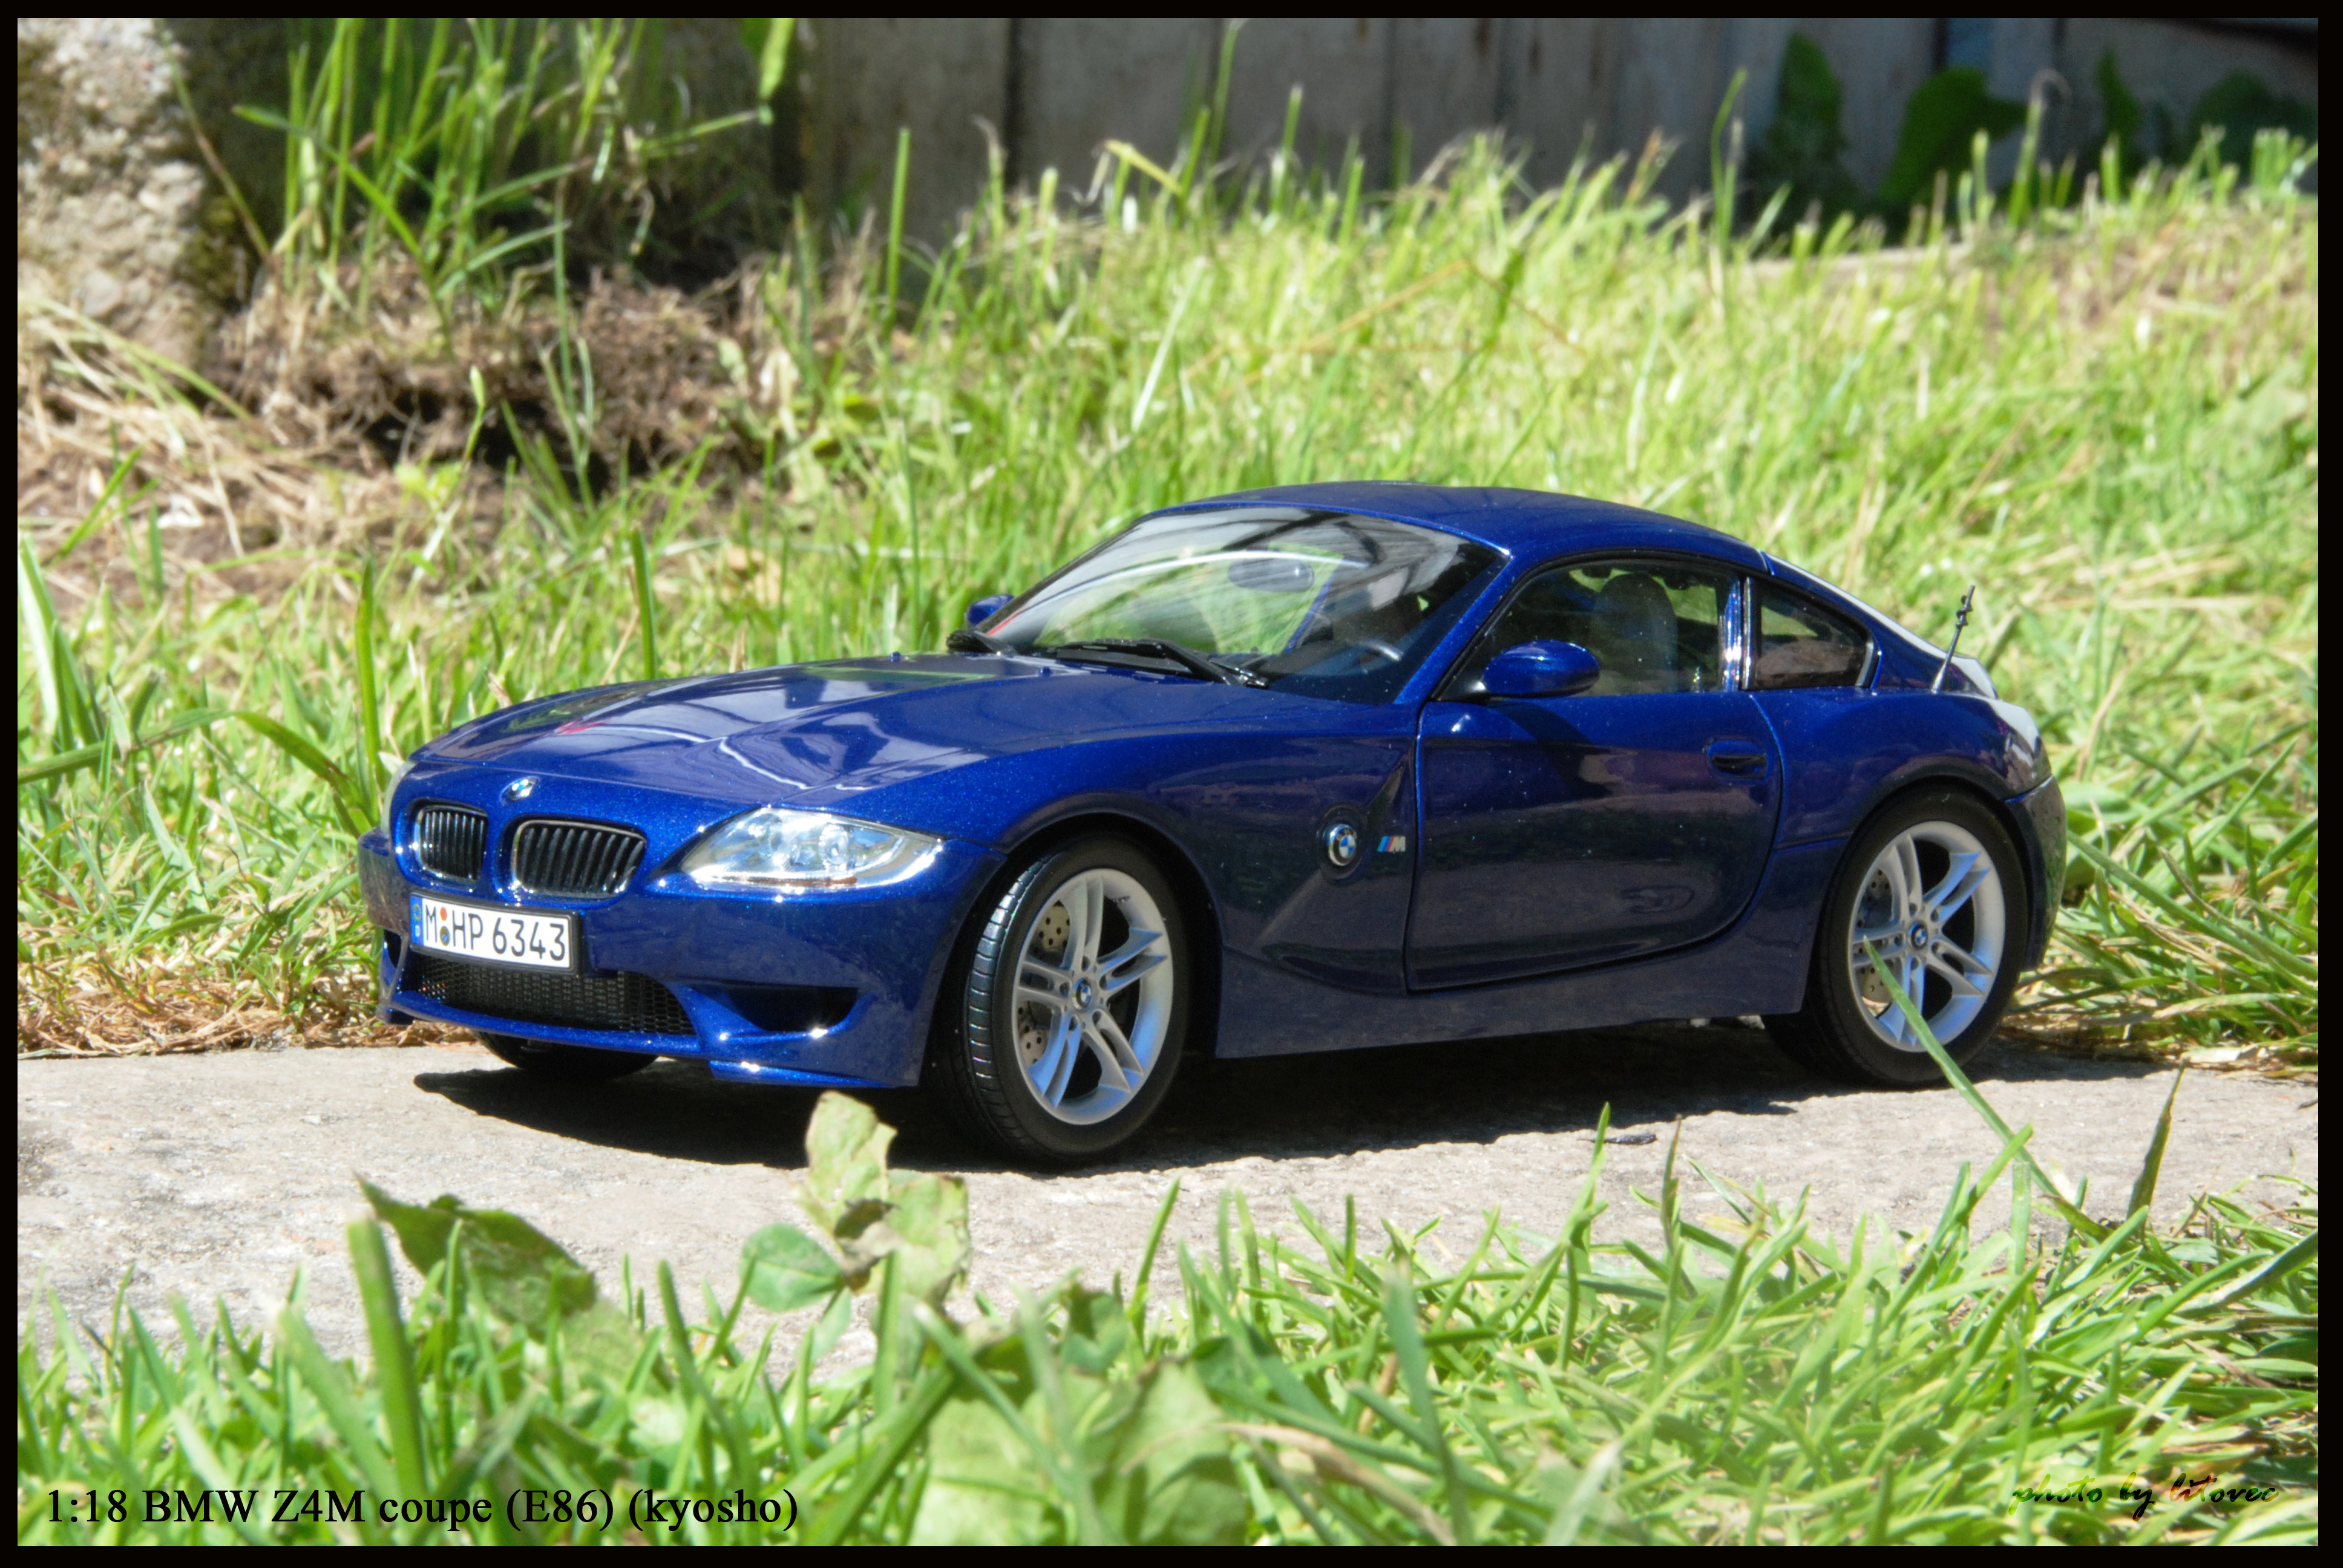 BMW Z4M coupe (E86) blue (kyosho)